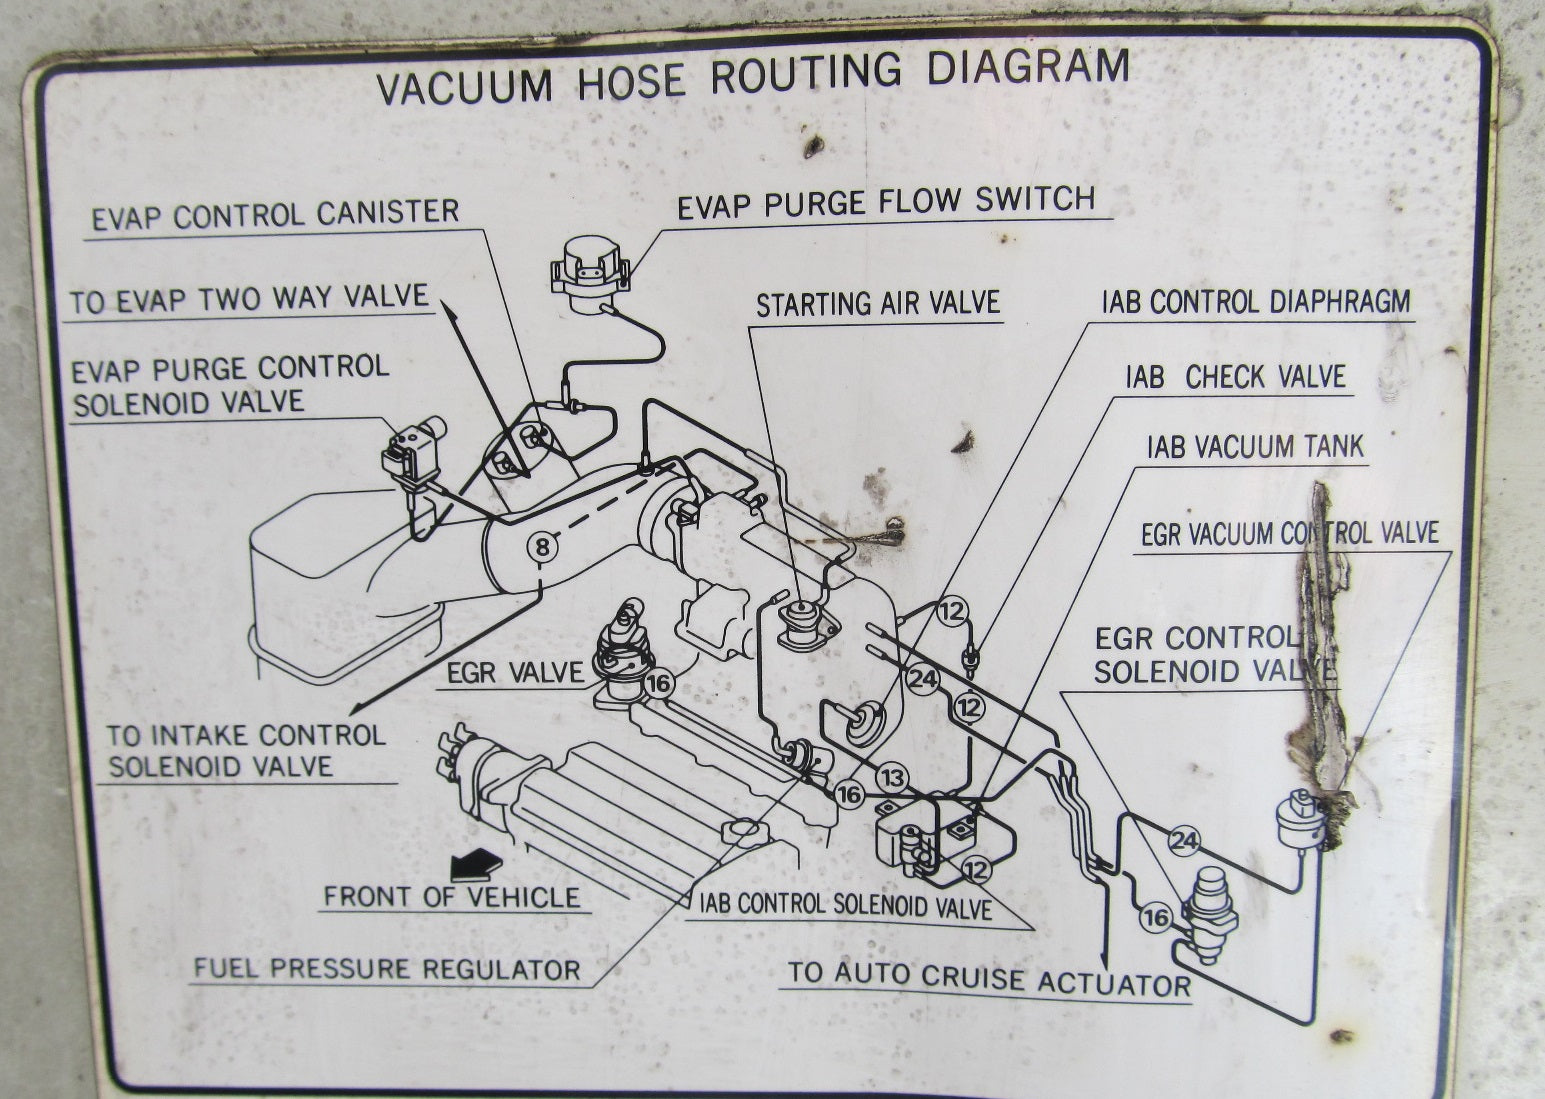 diagram] 1983 honda prelude engine diagram full version hd quality engine  diagram - mtswiring.prolocomontefano.it  prolocomontefano.it